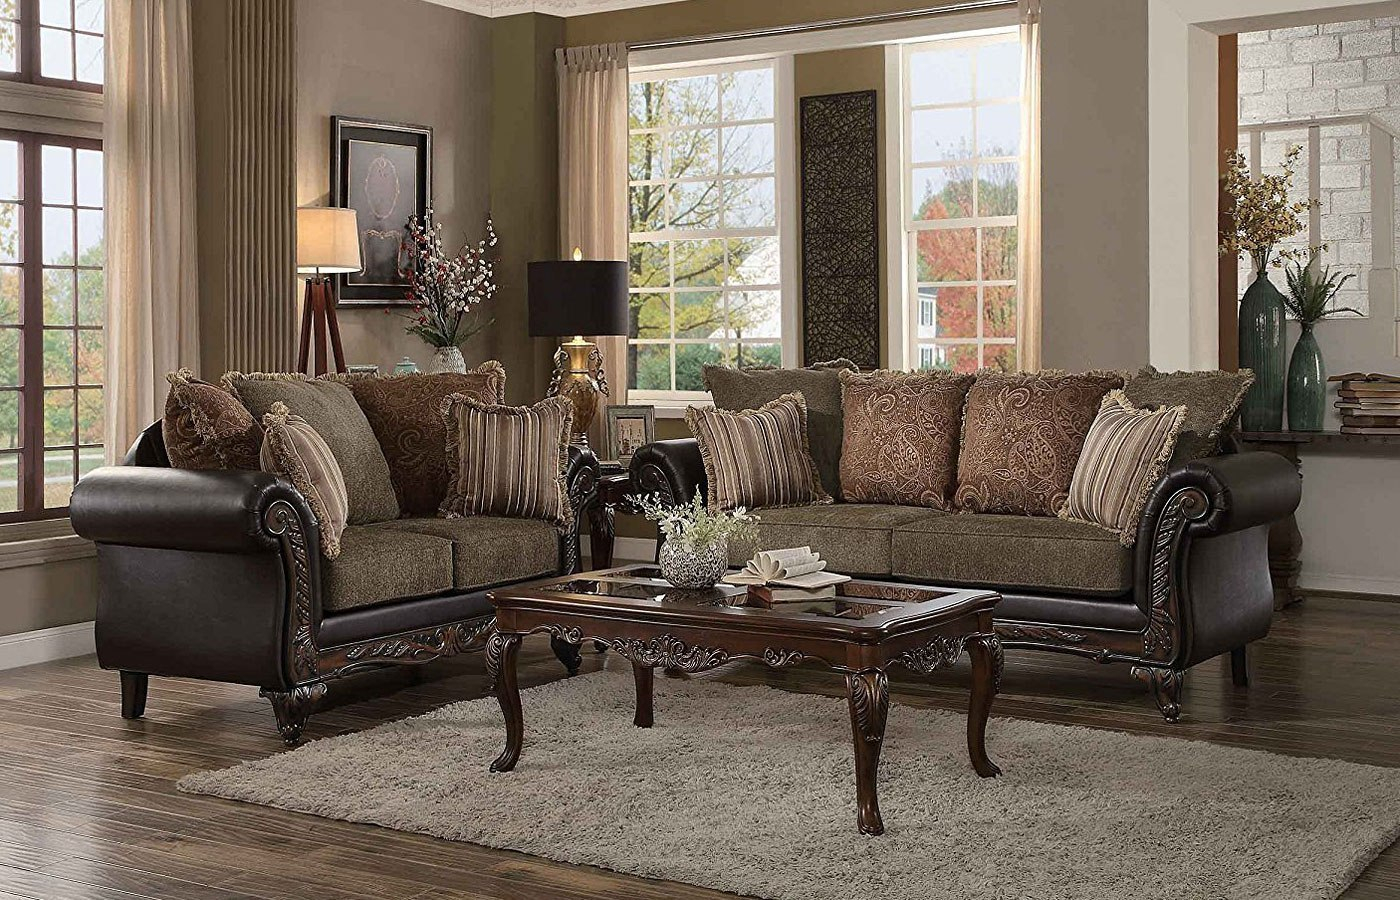 Thibodaux Living Room Set Brown within 10 Smart Designs of How to Build Complete Living Room Sets